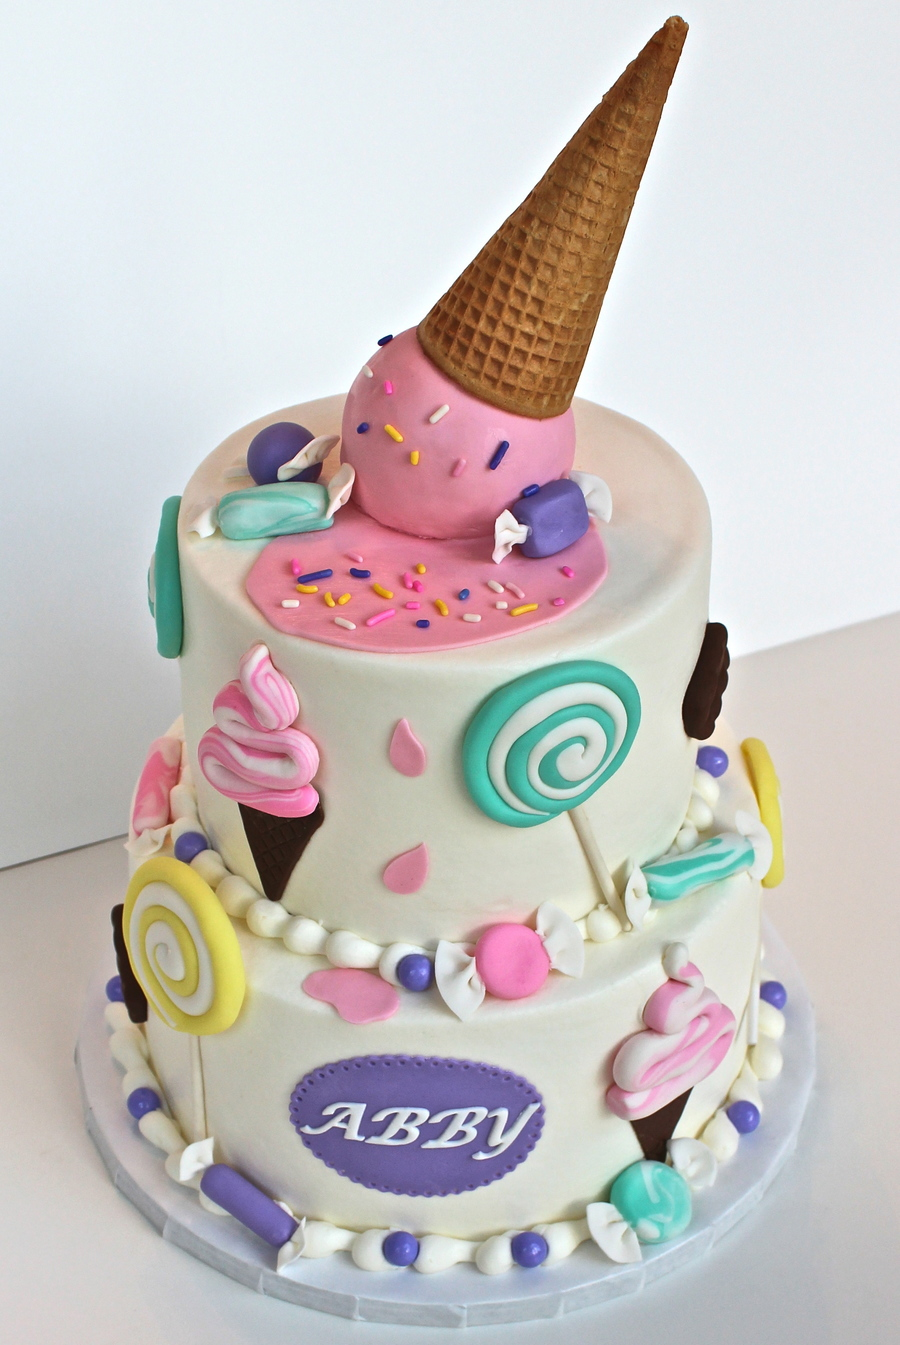 Dripping Cake For Kids Birthday